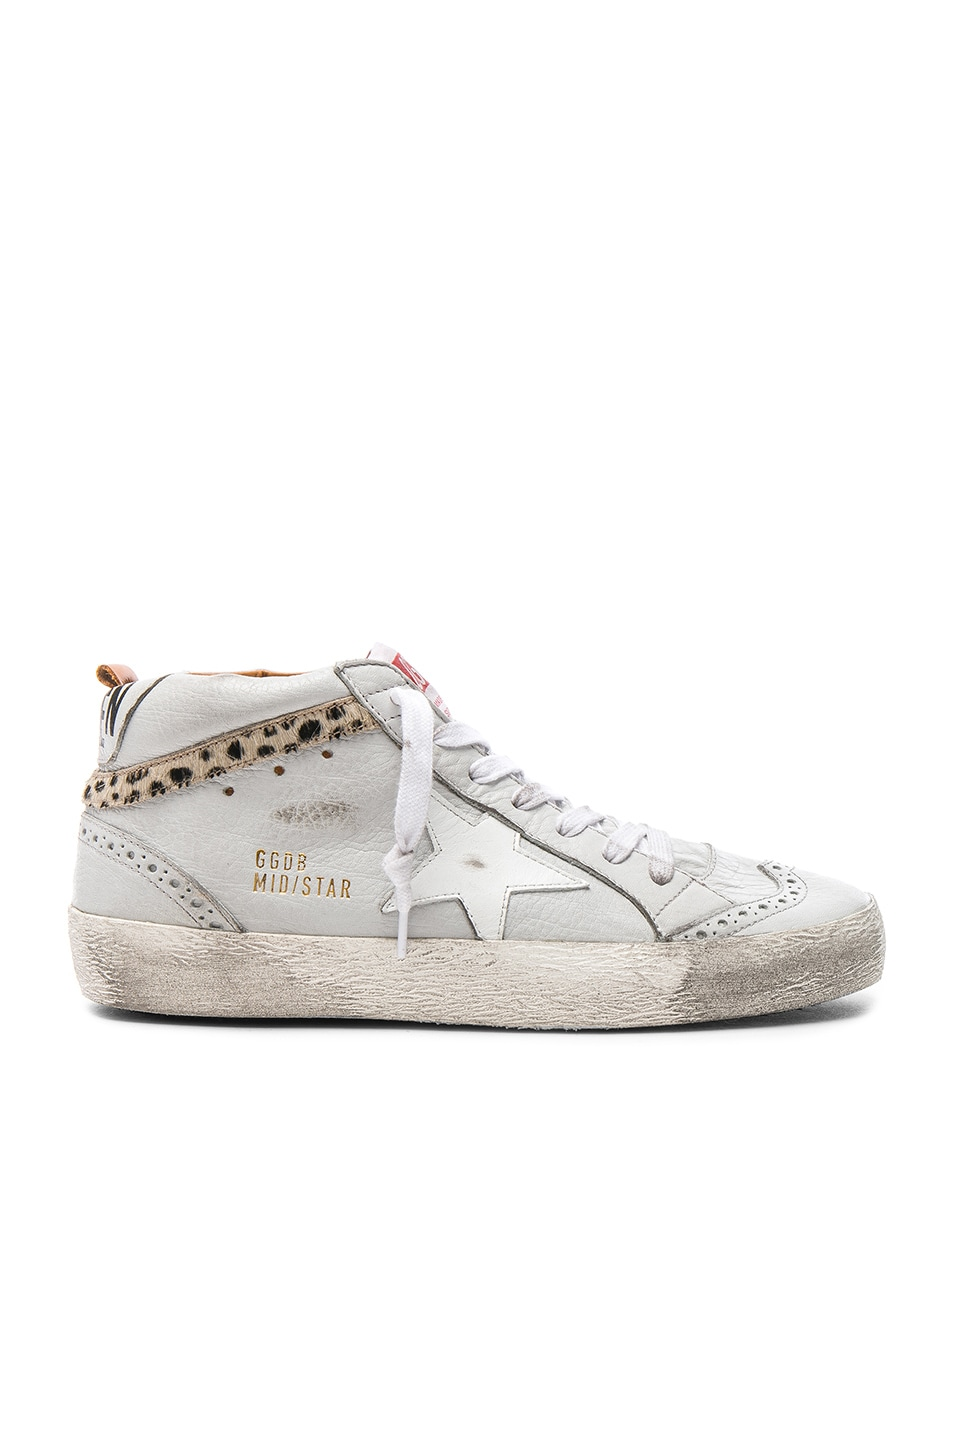 Image 1 of Golden Goose Leather Mid Star Sneakers With Cow Hair in Ice & Leo